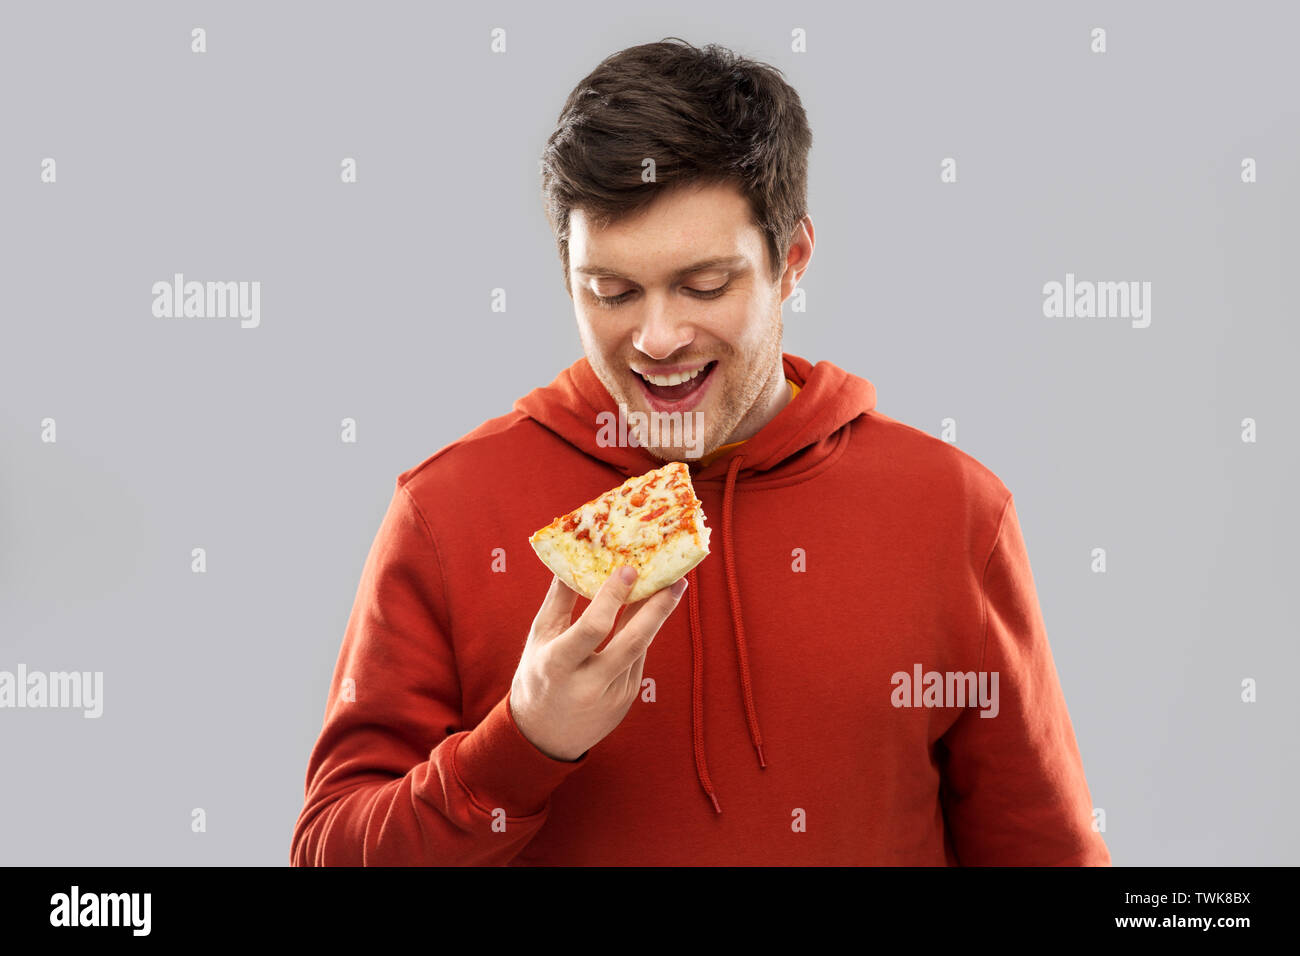 happy young man eating pizza - Stock Image